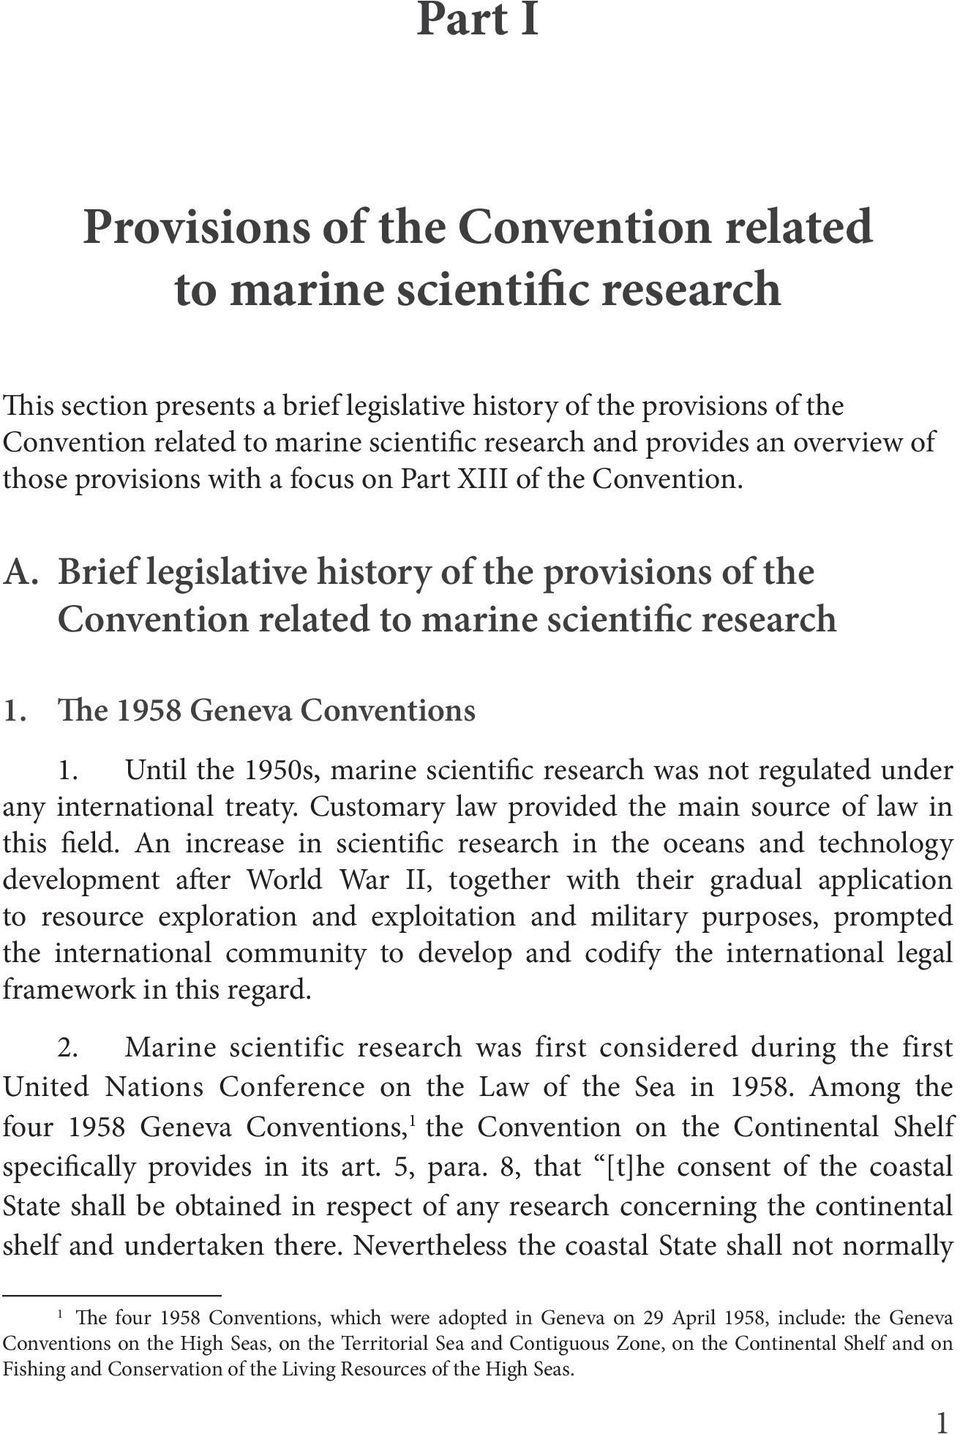 The 1958 Geneva Conventions 1. Until the 1950s, marine scientific research was not regulated under any international treaty. Customary law provided the main source of law in this field.